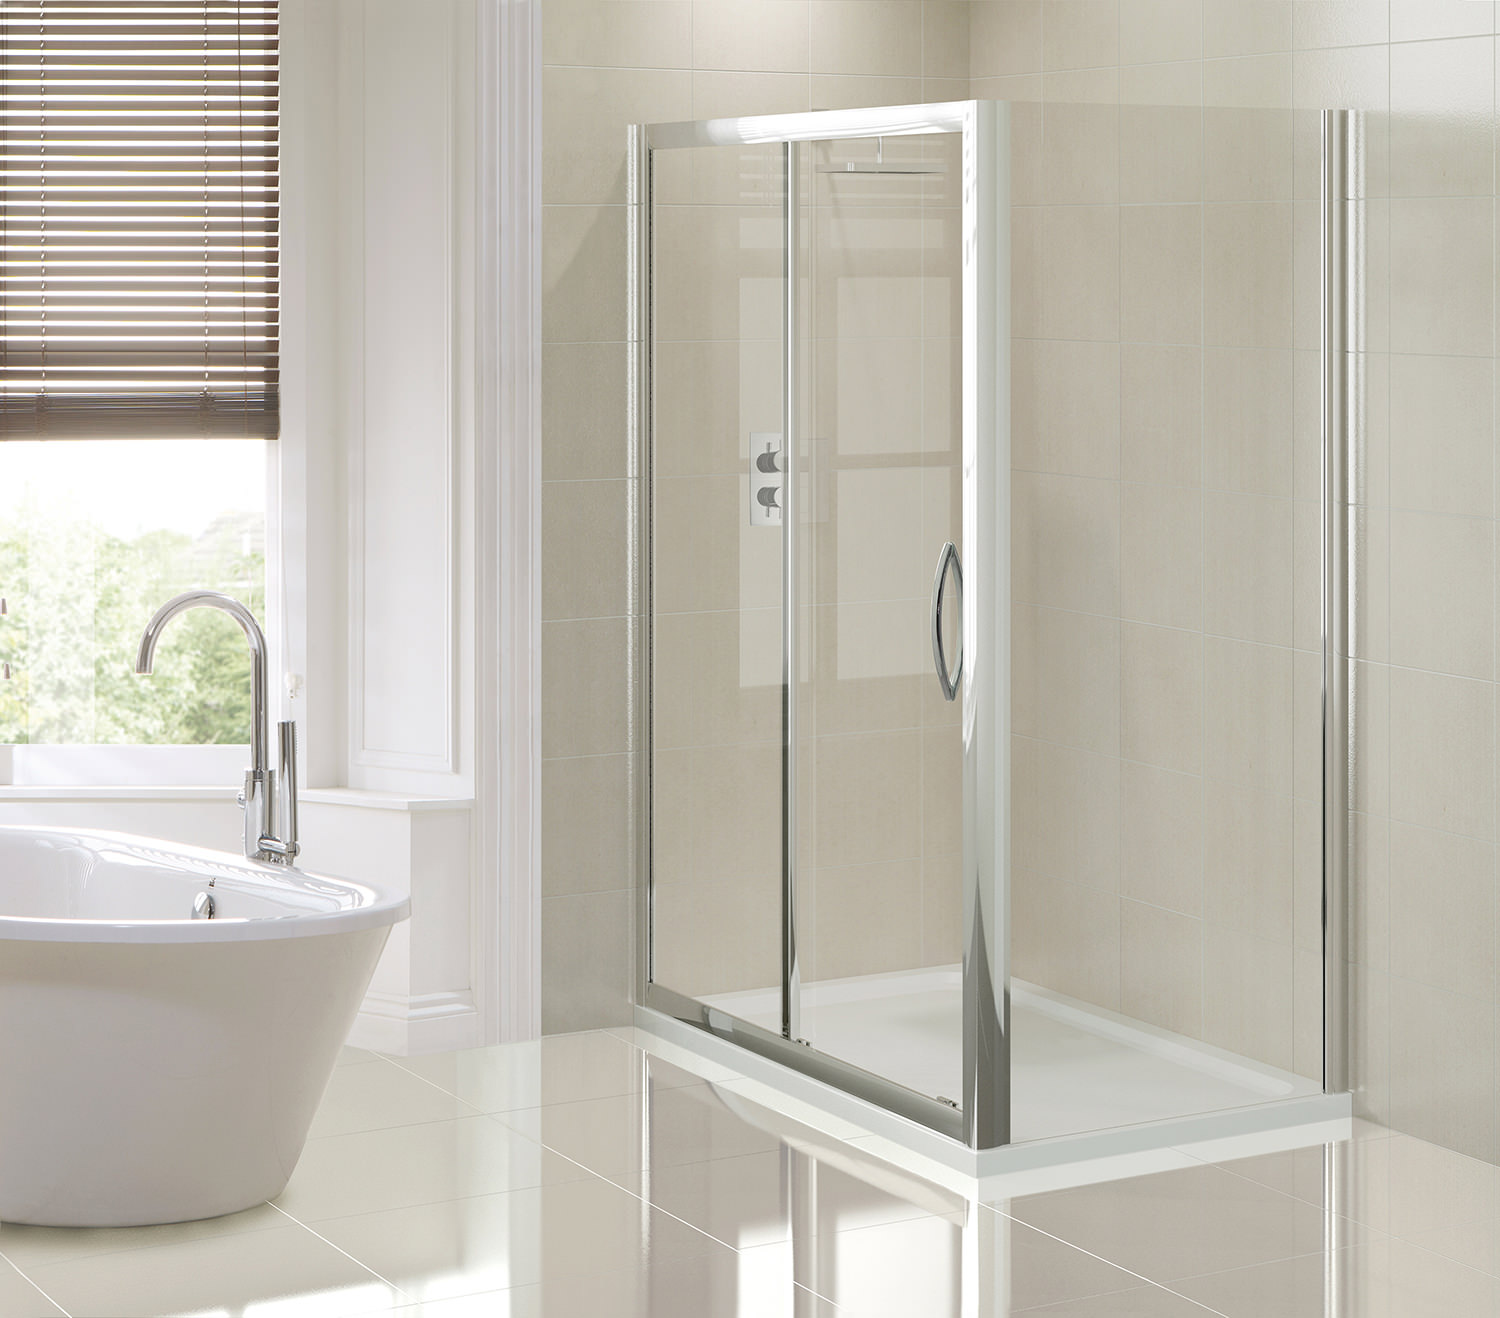 Aquadart Venturi 8 1200mm Sliding Shower Door Aq8212s